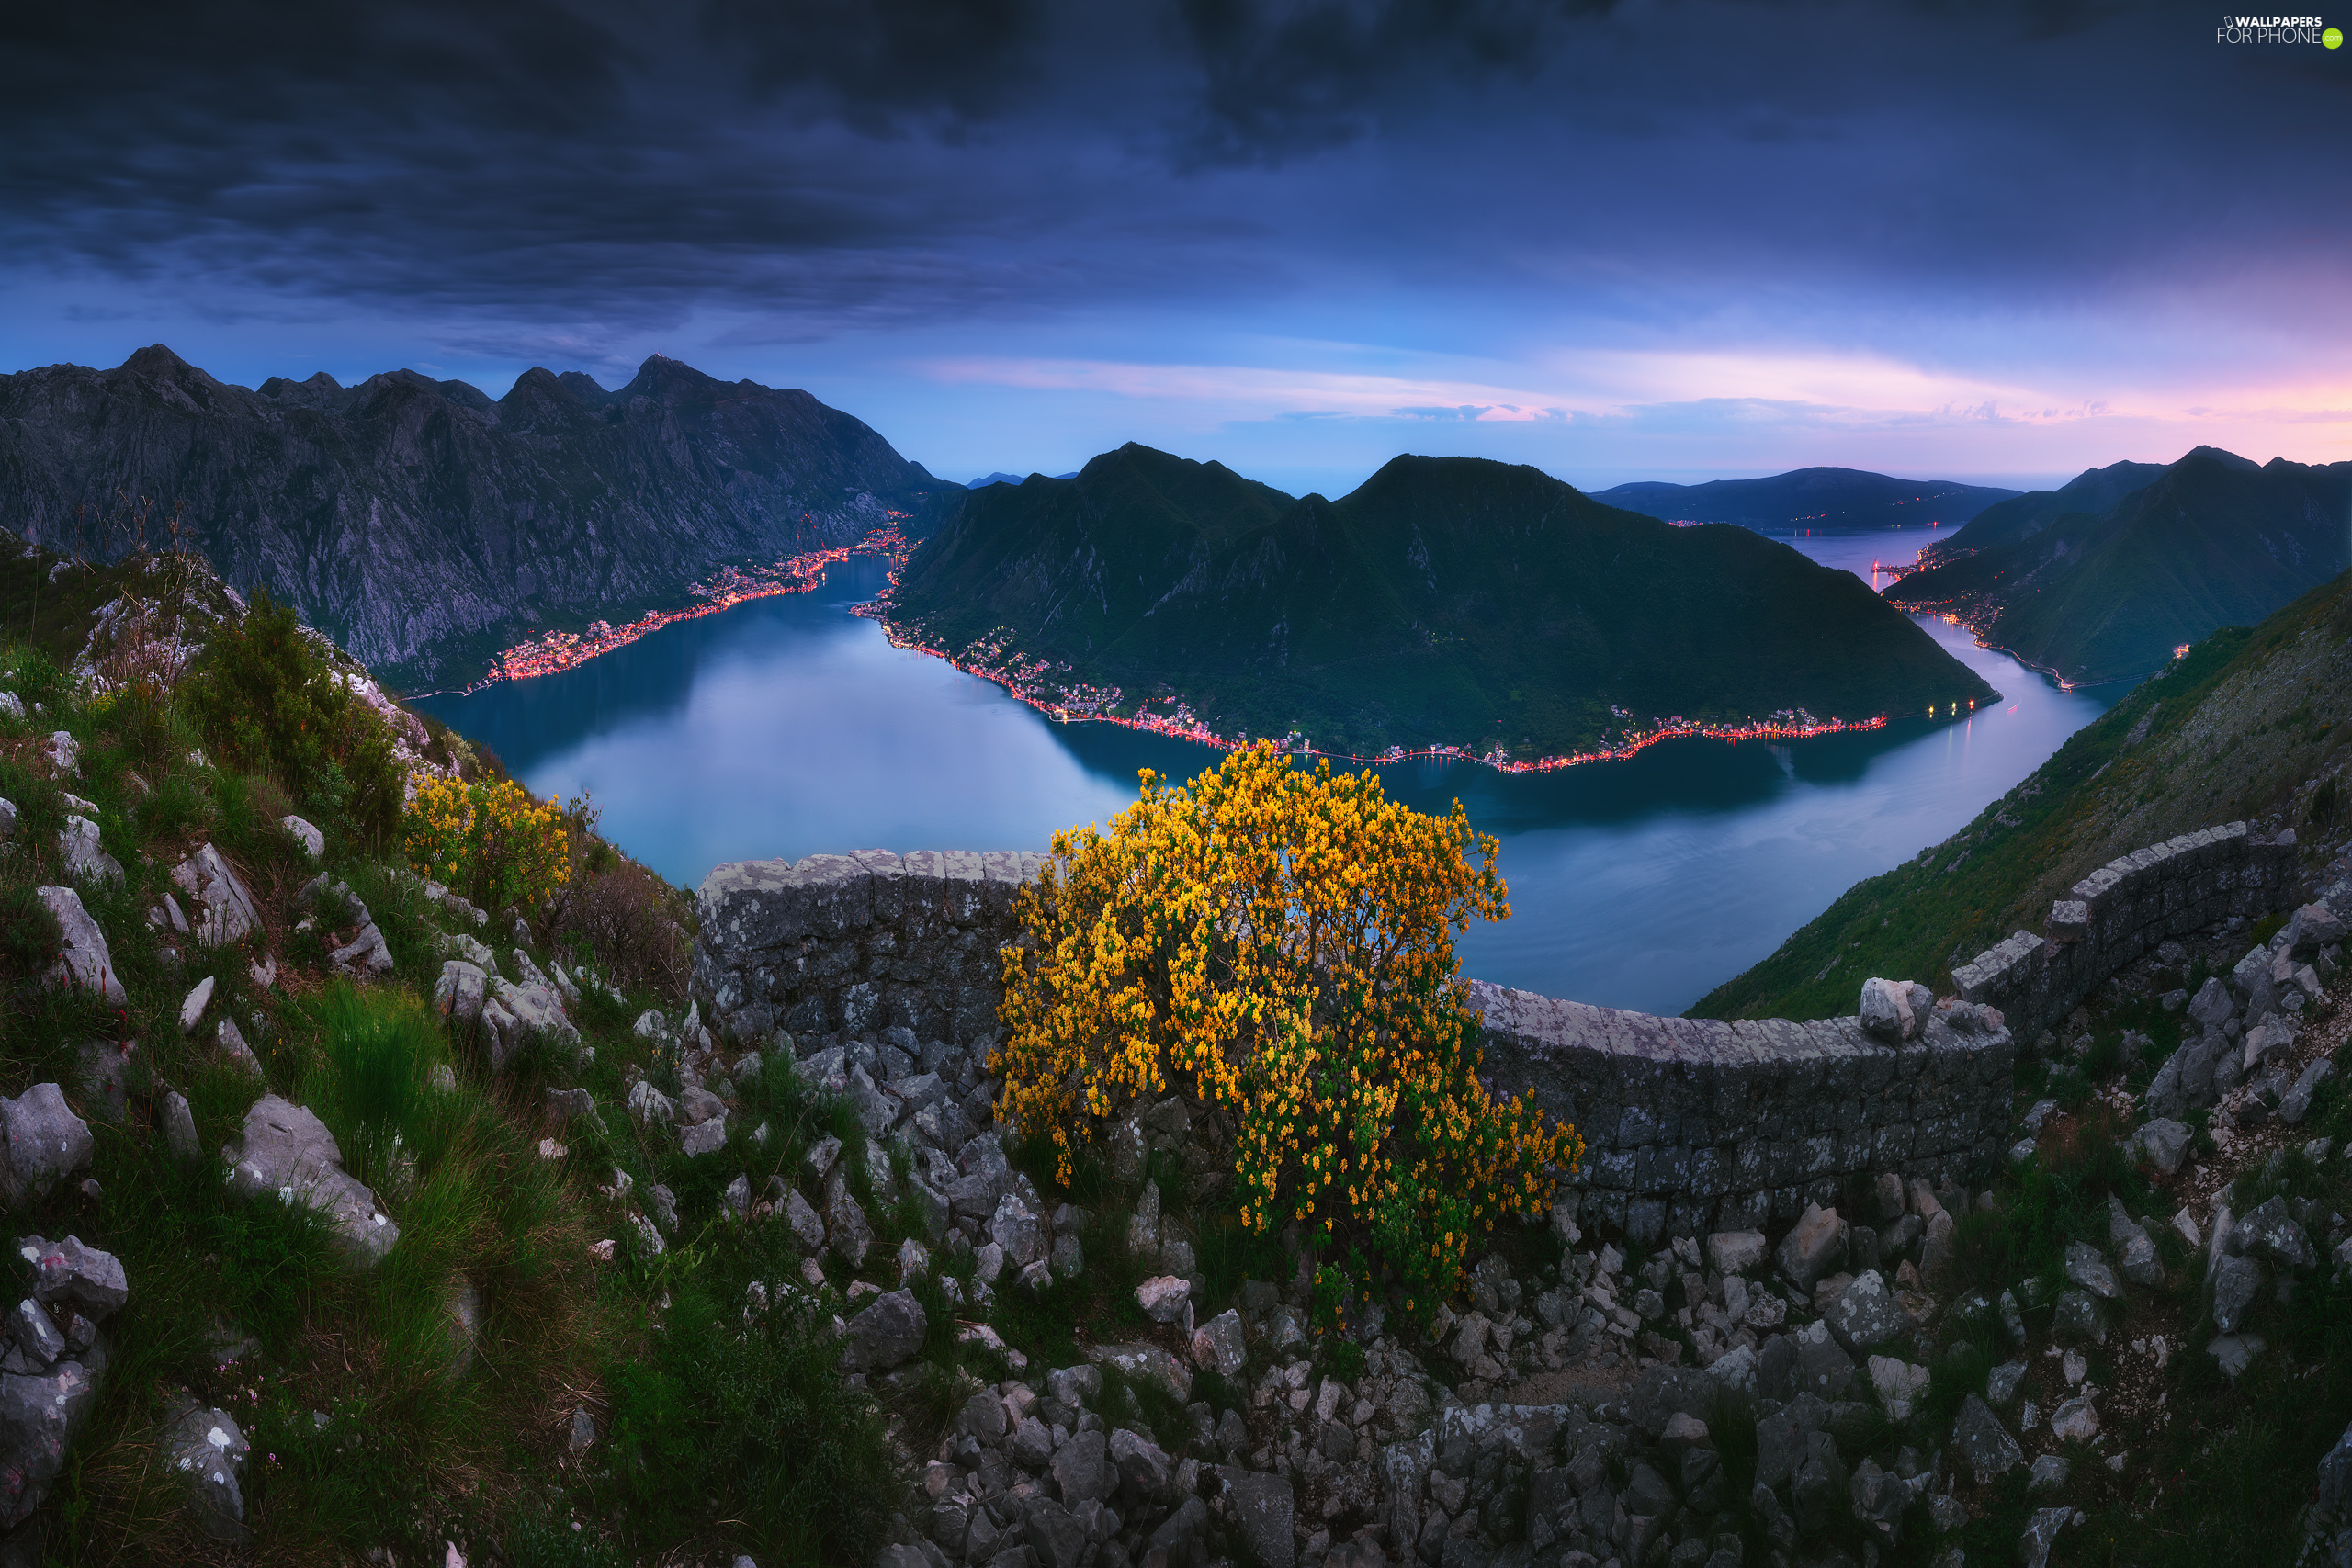 Bay of Kotor, Mountains, River, Montenegro, Stones, VEGETATION, Night, light, trees